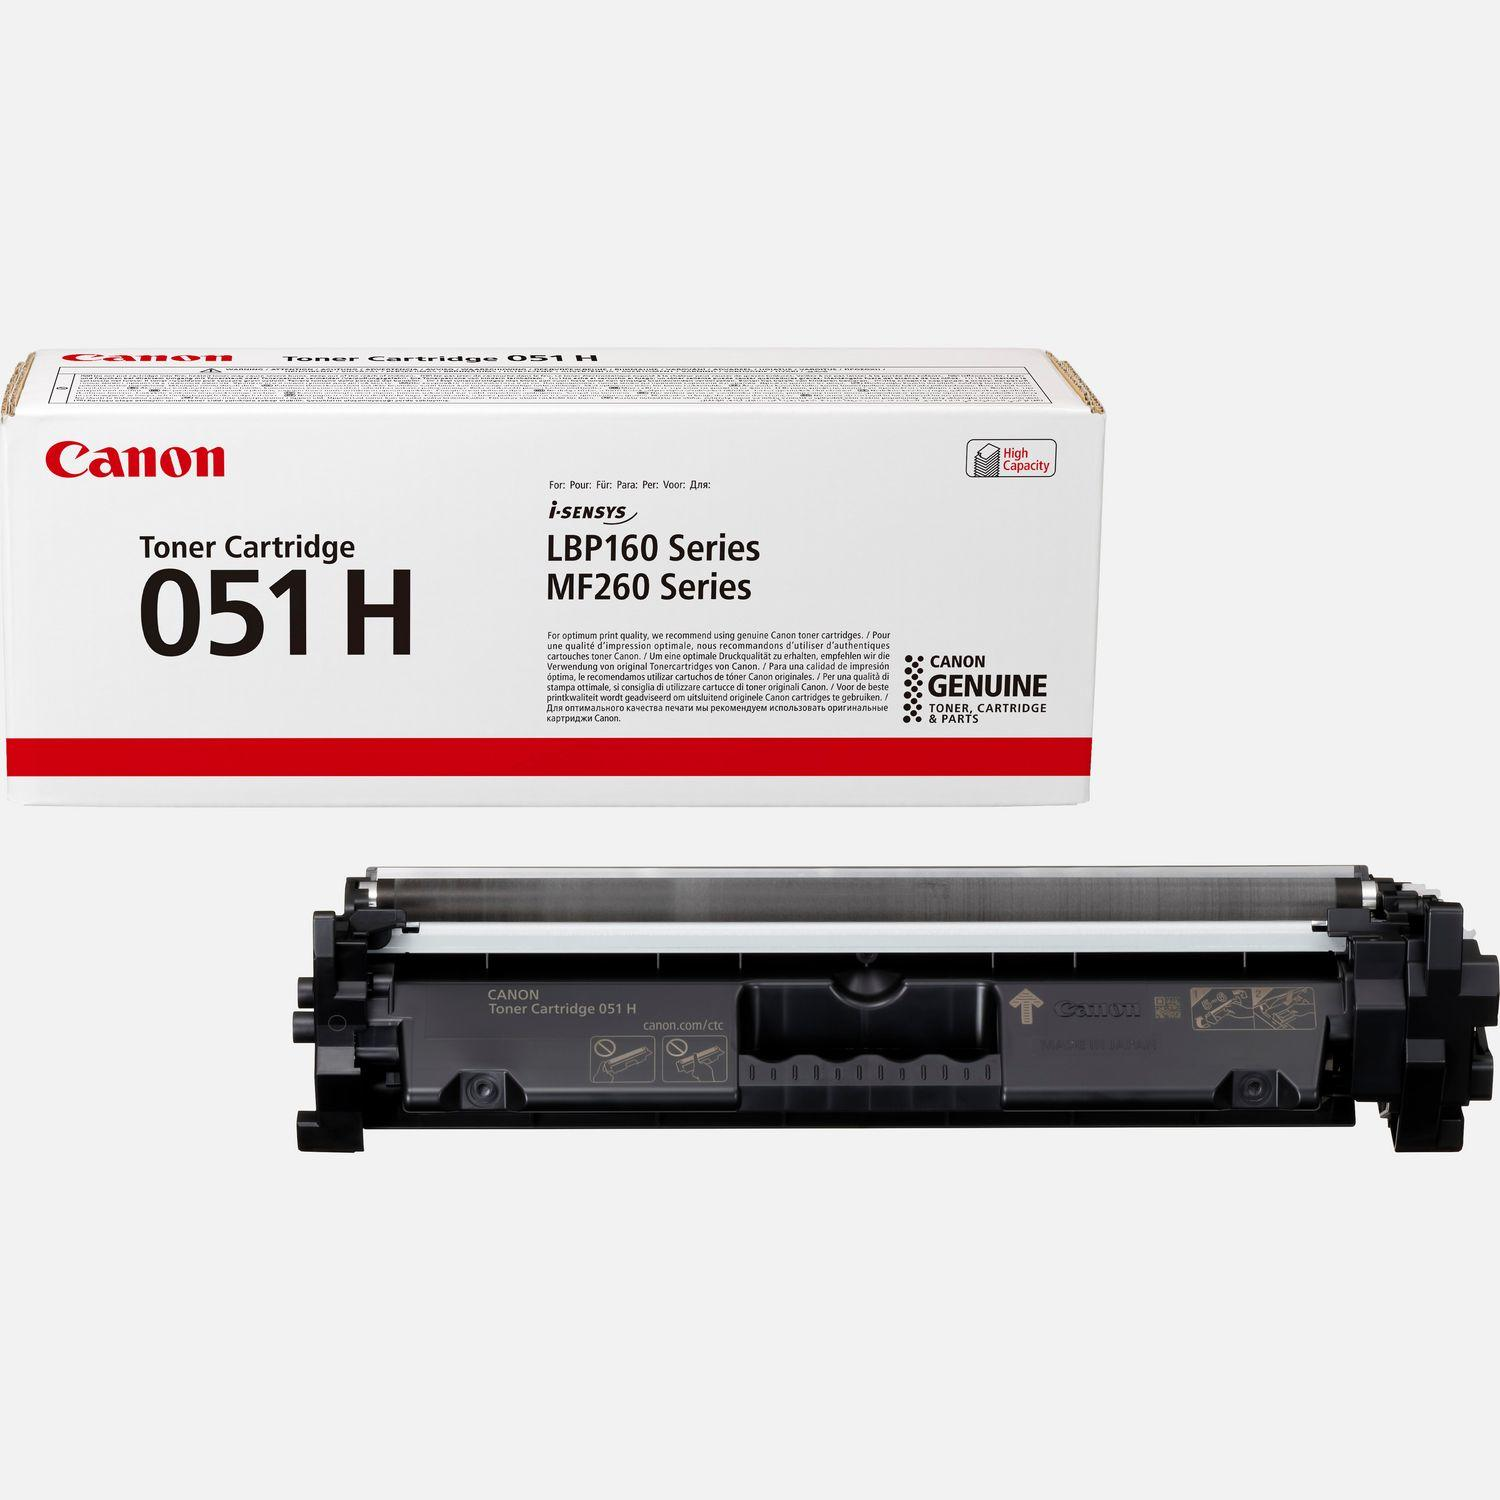 Canon Toner Cartridge 051 H black